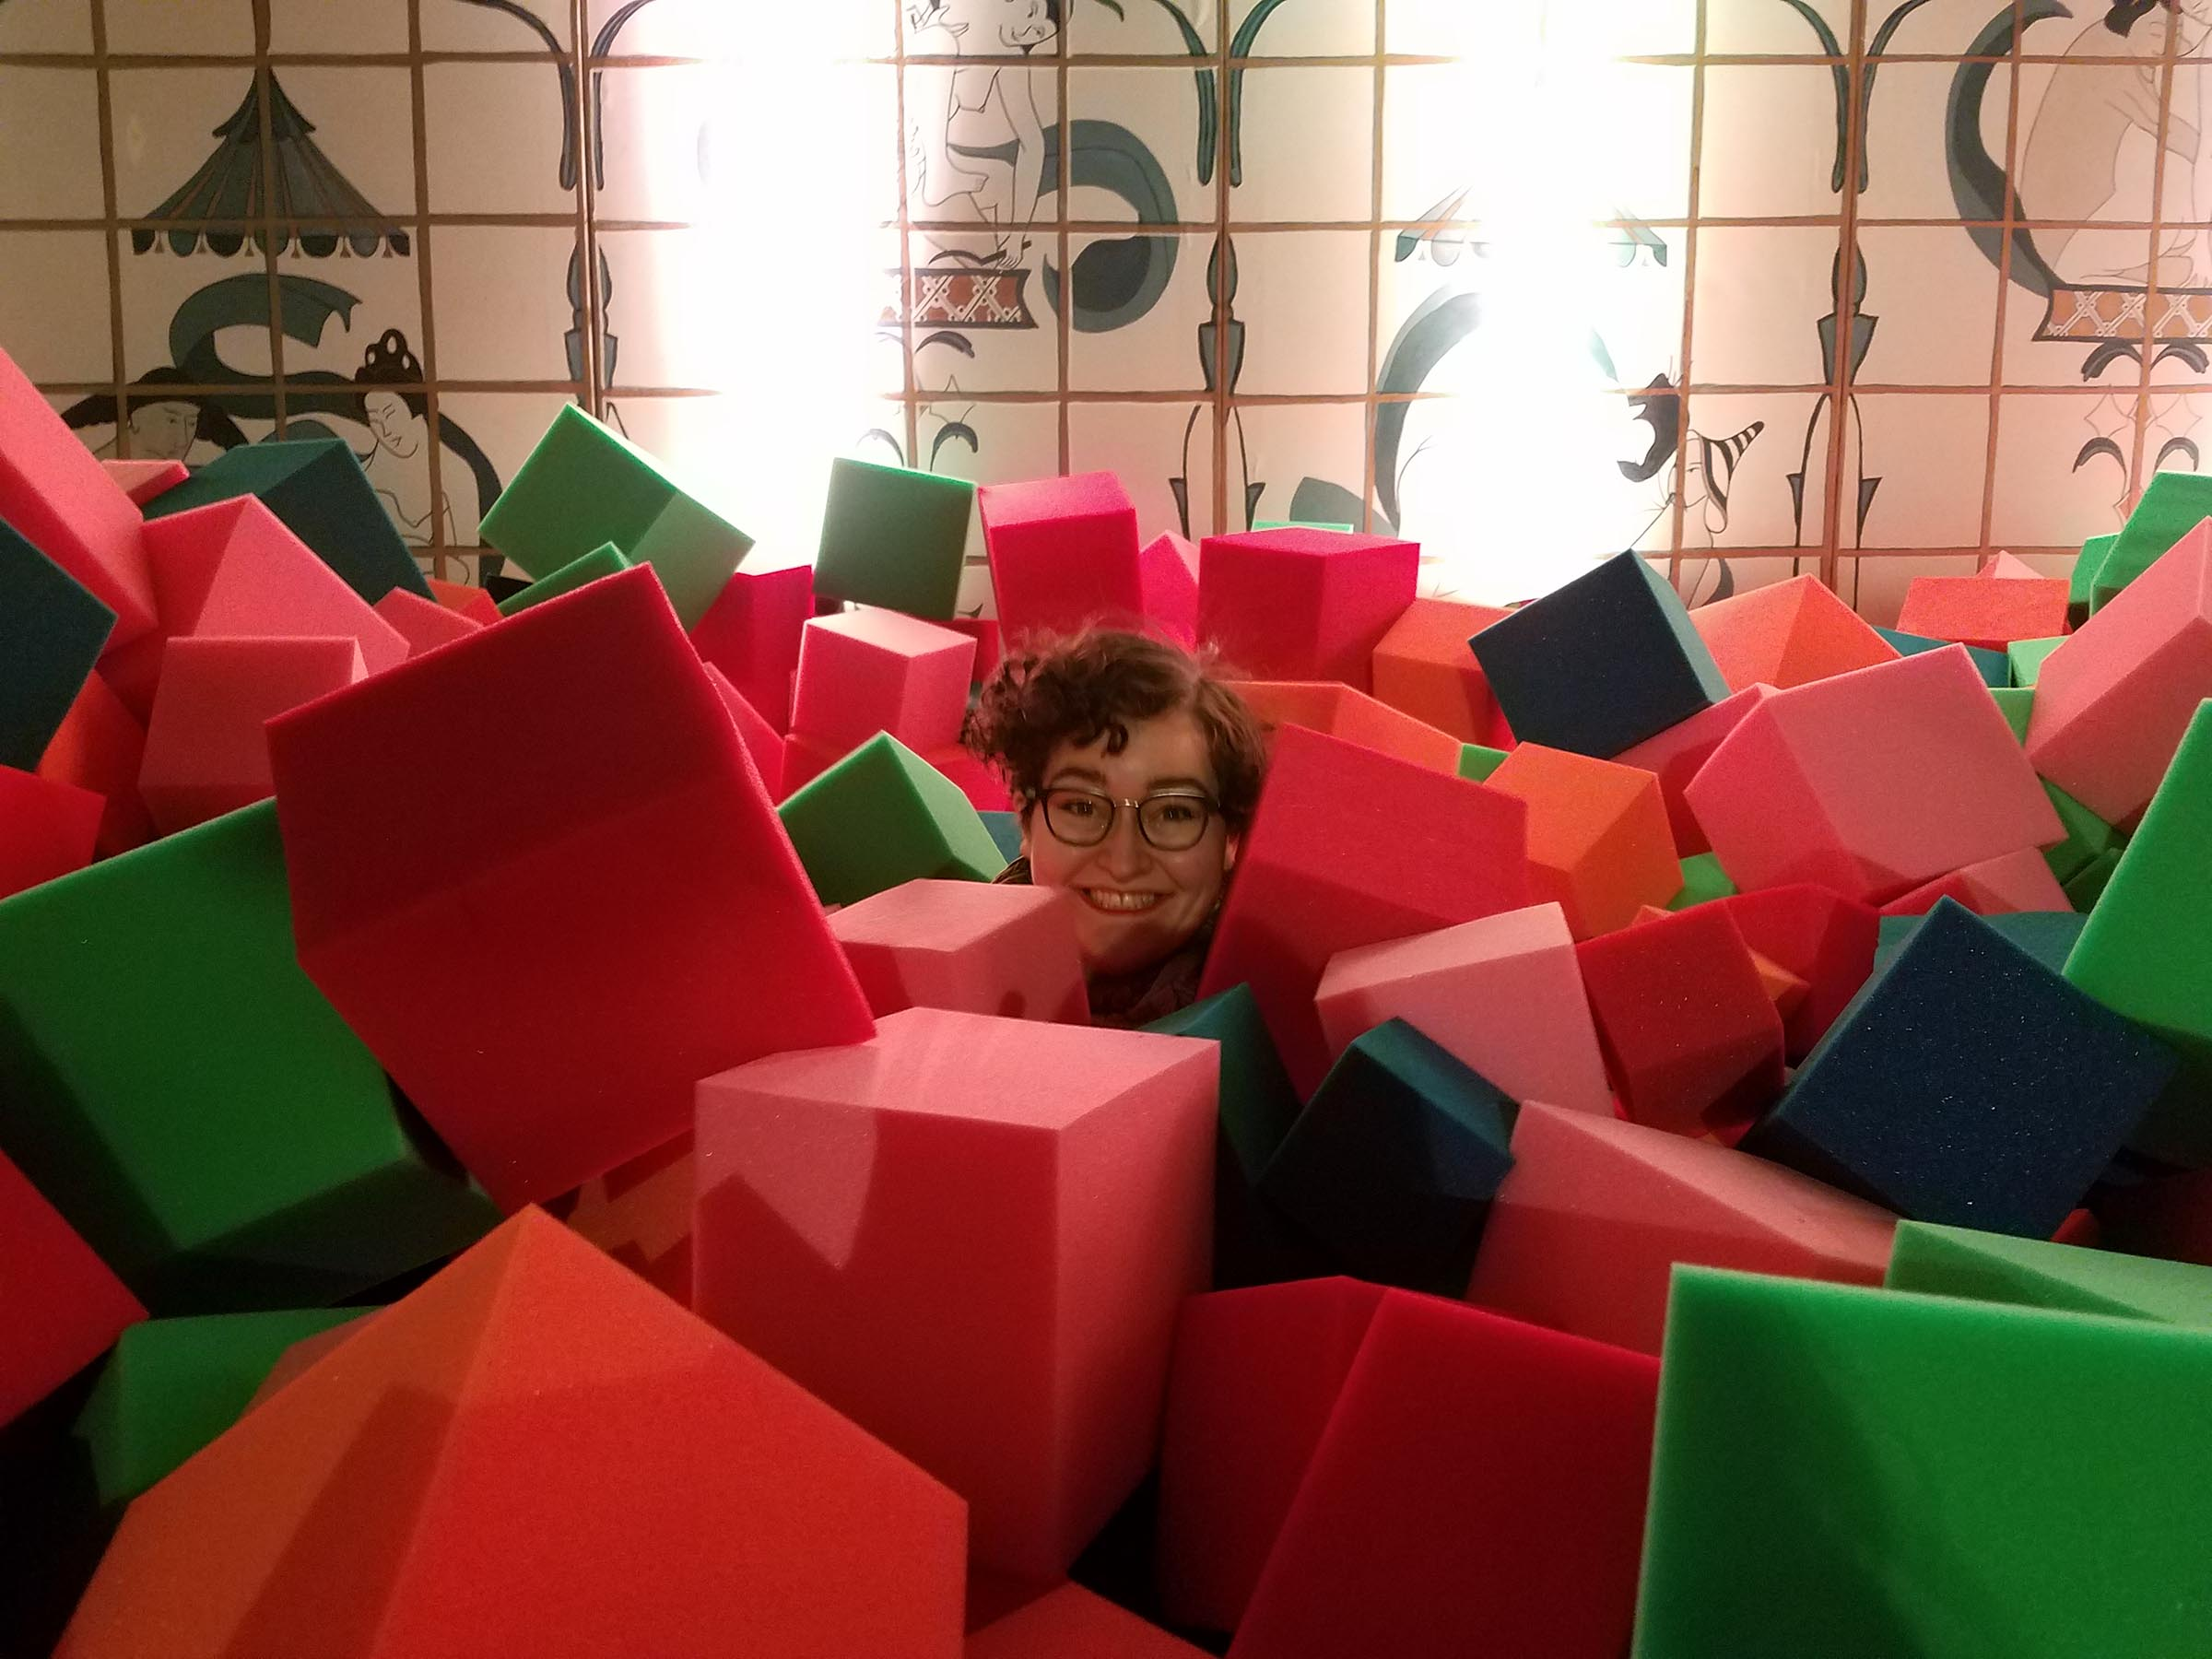 A deep pile of red and green foam cubes covering the floor, like a ball pit. A person hiding beneath the foam cubes peeks their head out and smiles at the camera. The opposite wall is covered in faux Japanese erotic art, for some reason.